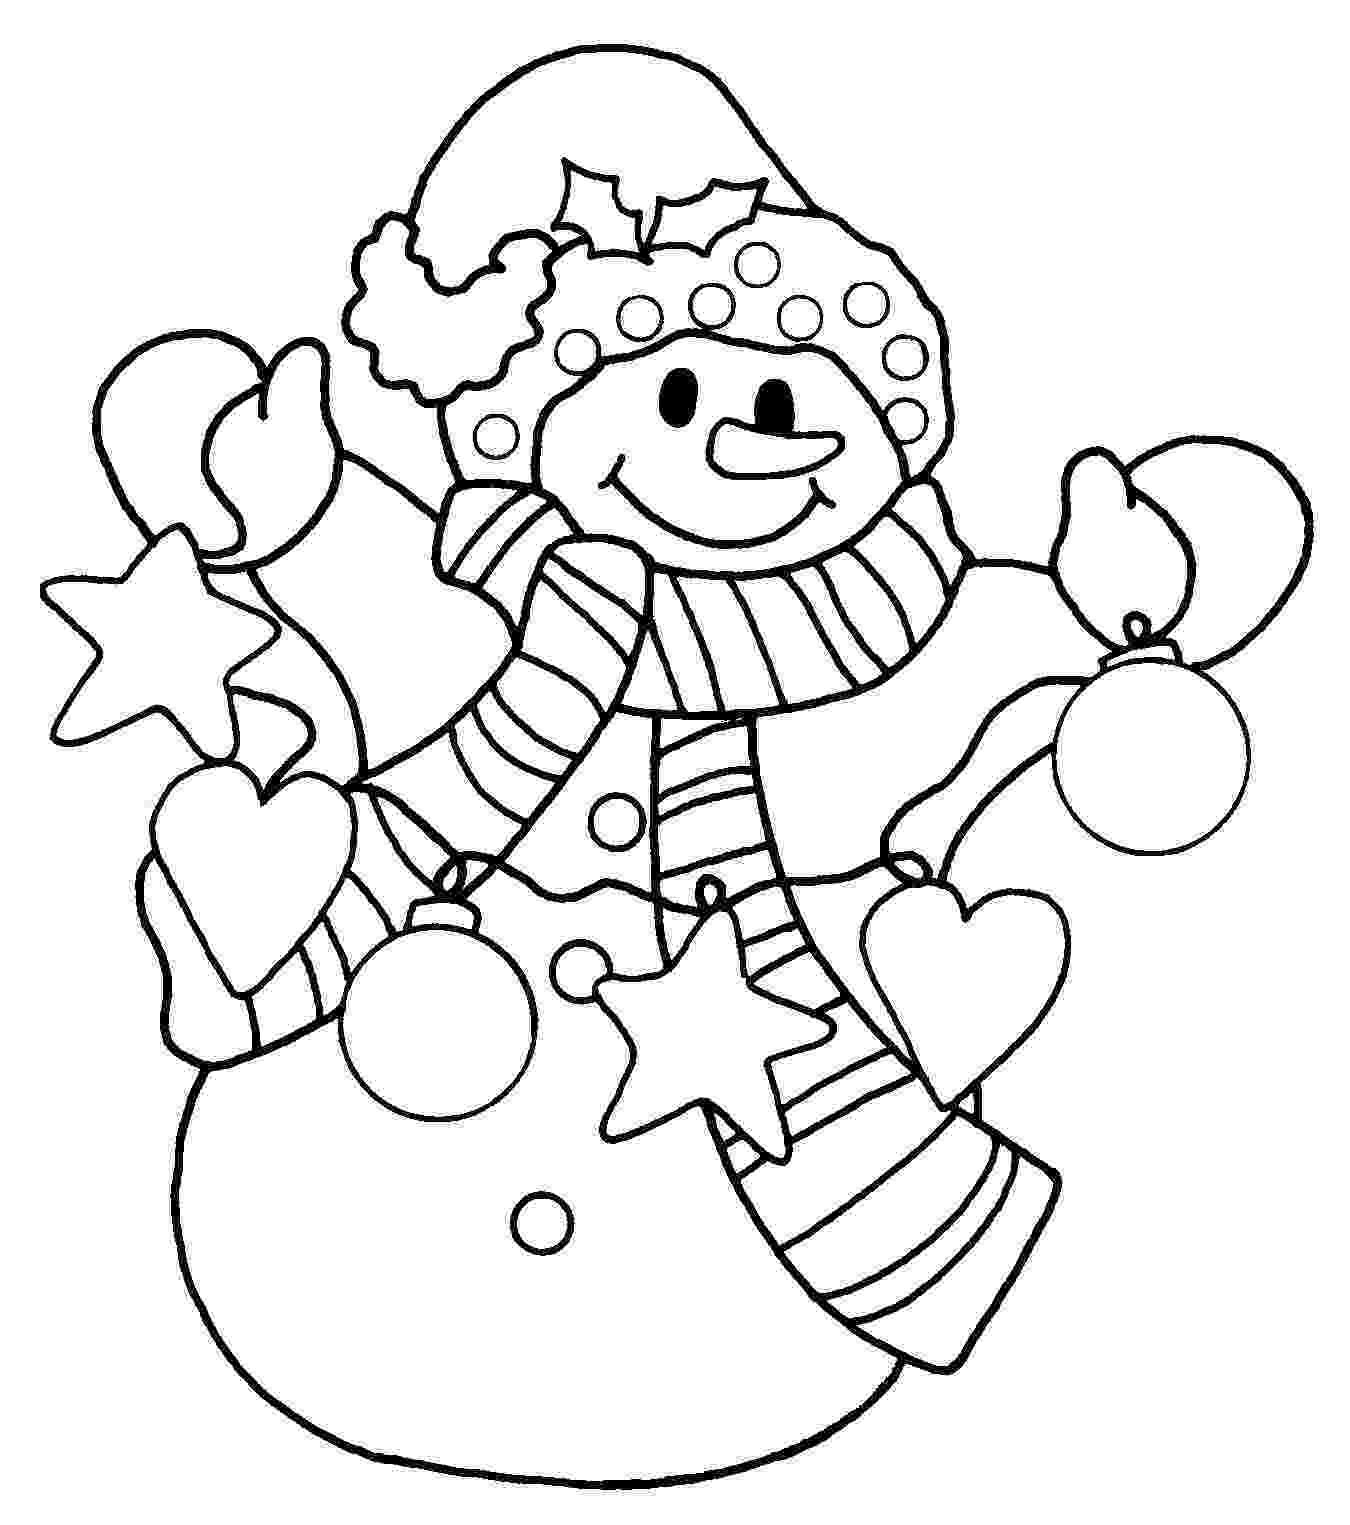 snowman color page free printable snowman coloring pages for kids cool2bkids snowman color page